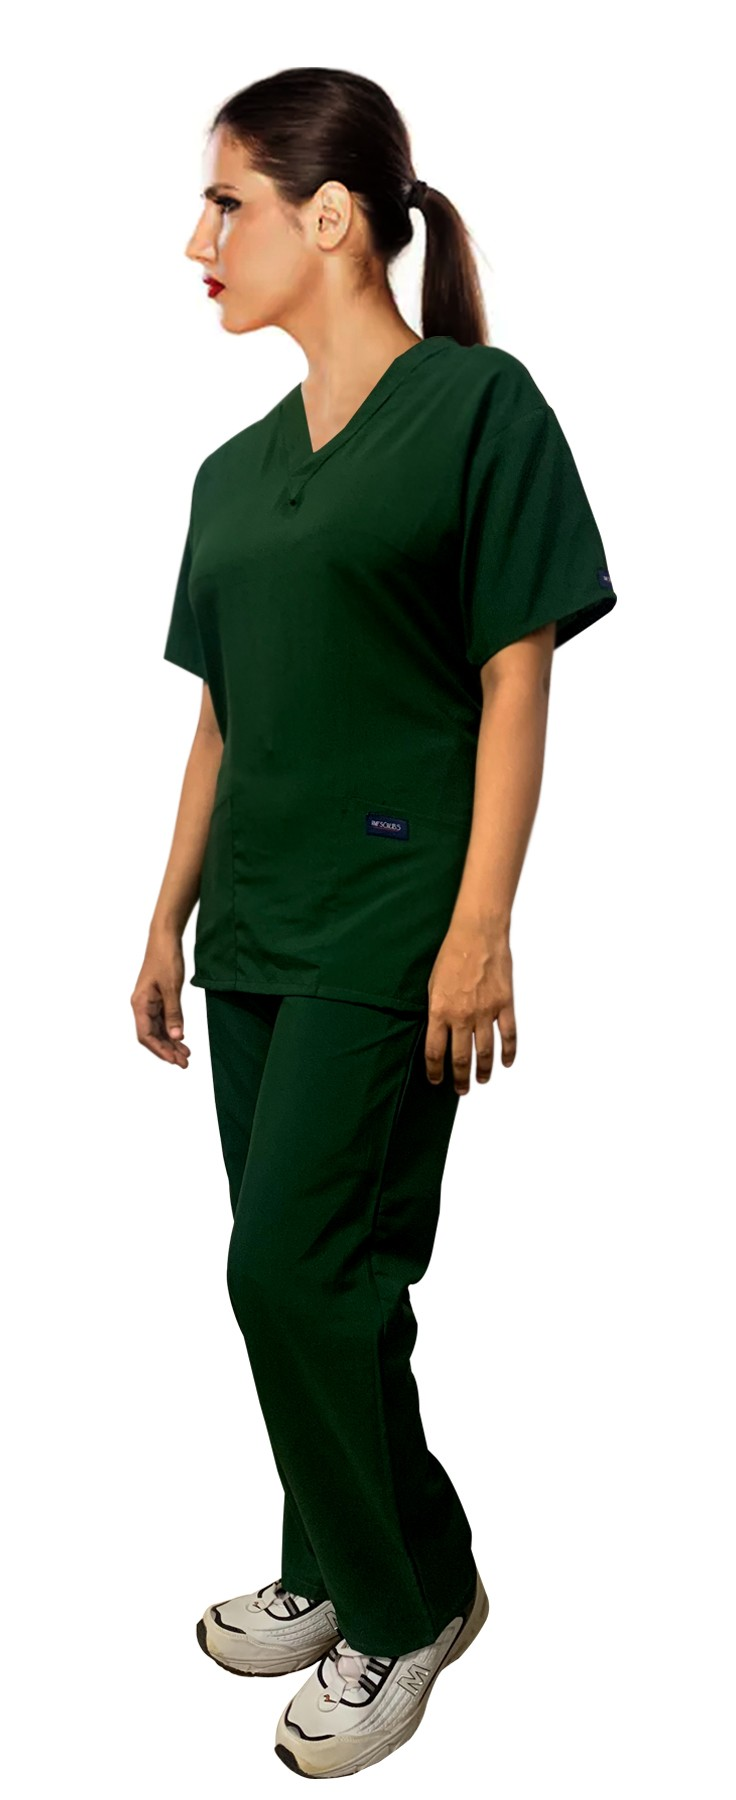 Only For USA Customers FINAL MARKDOWN Microfiber (100% Polyester) Hunter (Light/Dark) Green Scrub set 4 pocket  unisex half sleeves S,M,L (2 pkt top, 2 pkt pant elastic drawstring with cord)